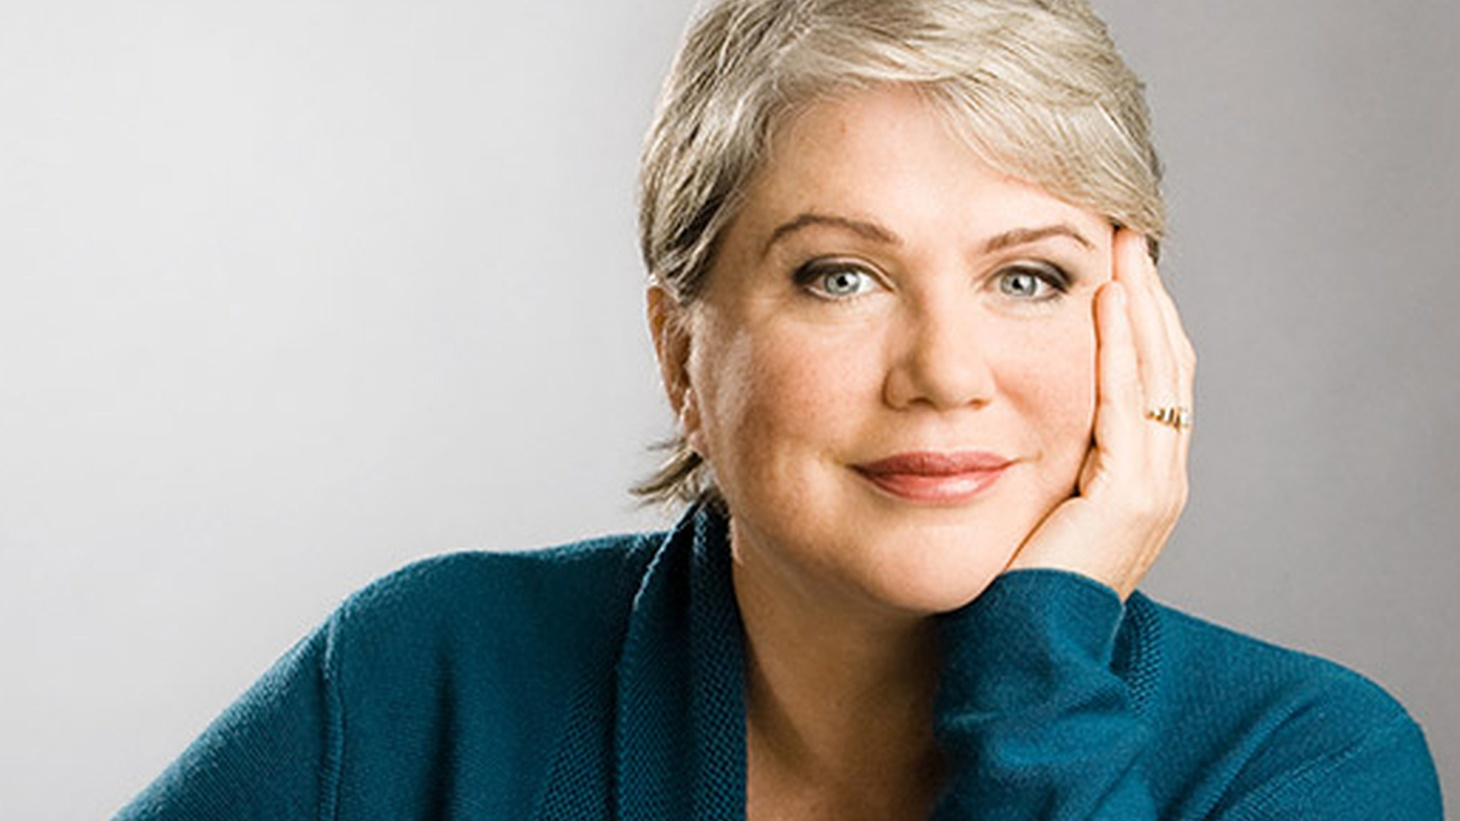 When comedienne Julia Sweeney and her brother both got cancer, she decided to tell the story the best way she knew how: in a comedy club. What resulted is halfway between standup comedy and true-life diary entries. She eventually turned some of these vignettes into a one-woman show called God Said Ha!, which Quentin Tarantino made into a movie and Julia put out as a book. The comedy club where she performed, called Un-Cabaret, is devoted to getting very funny people to tell unusually honest stories.